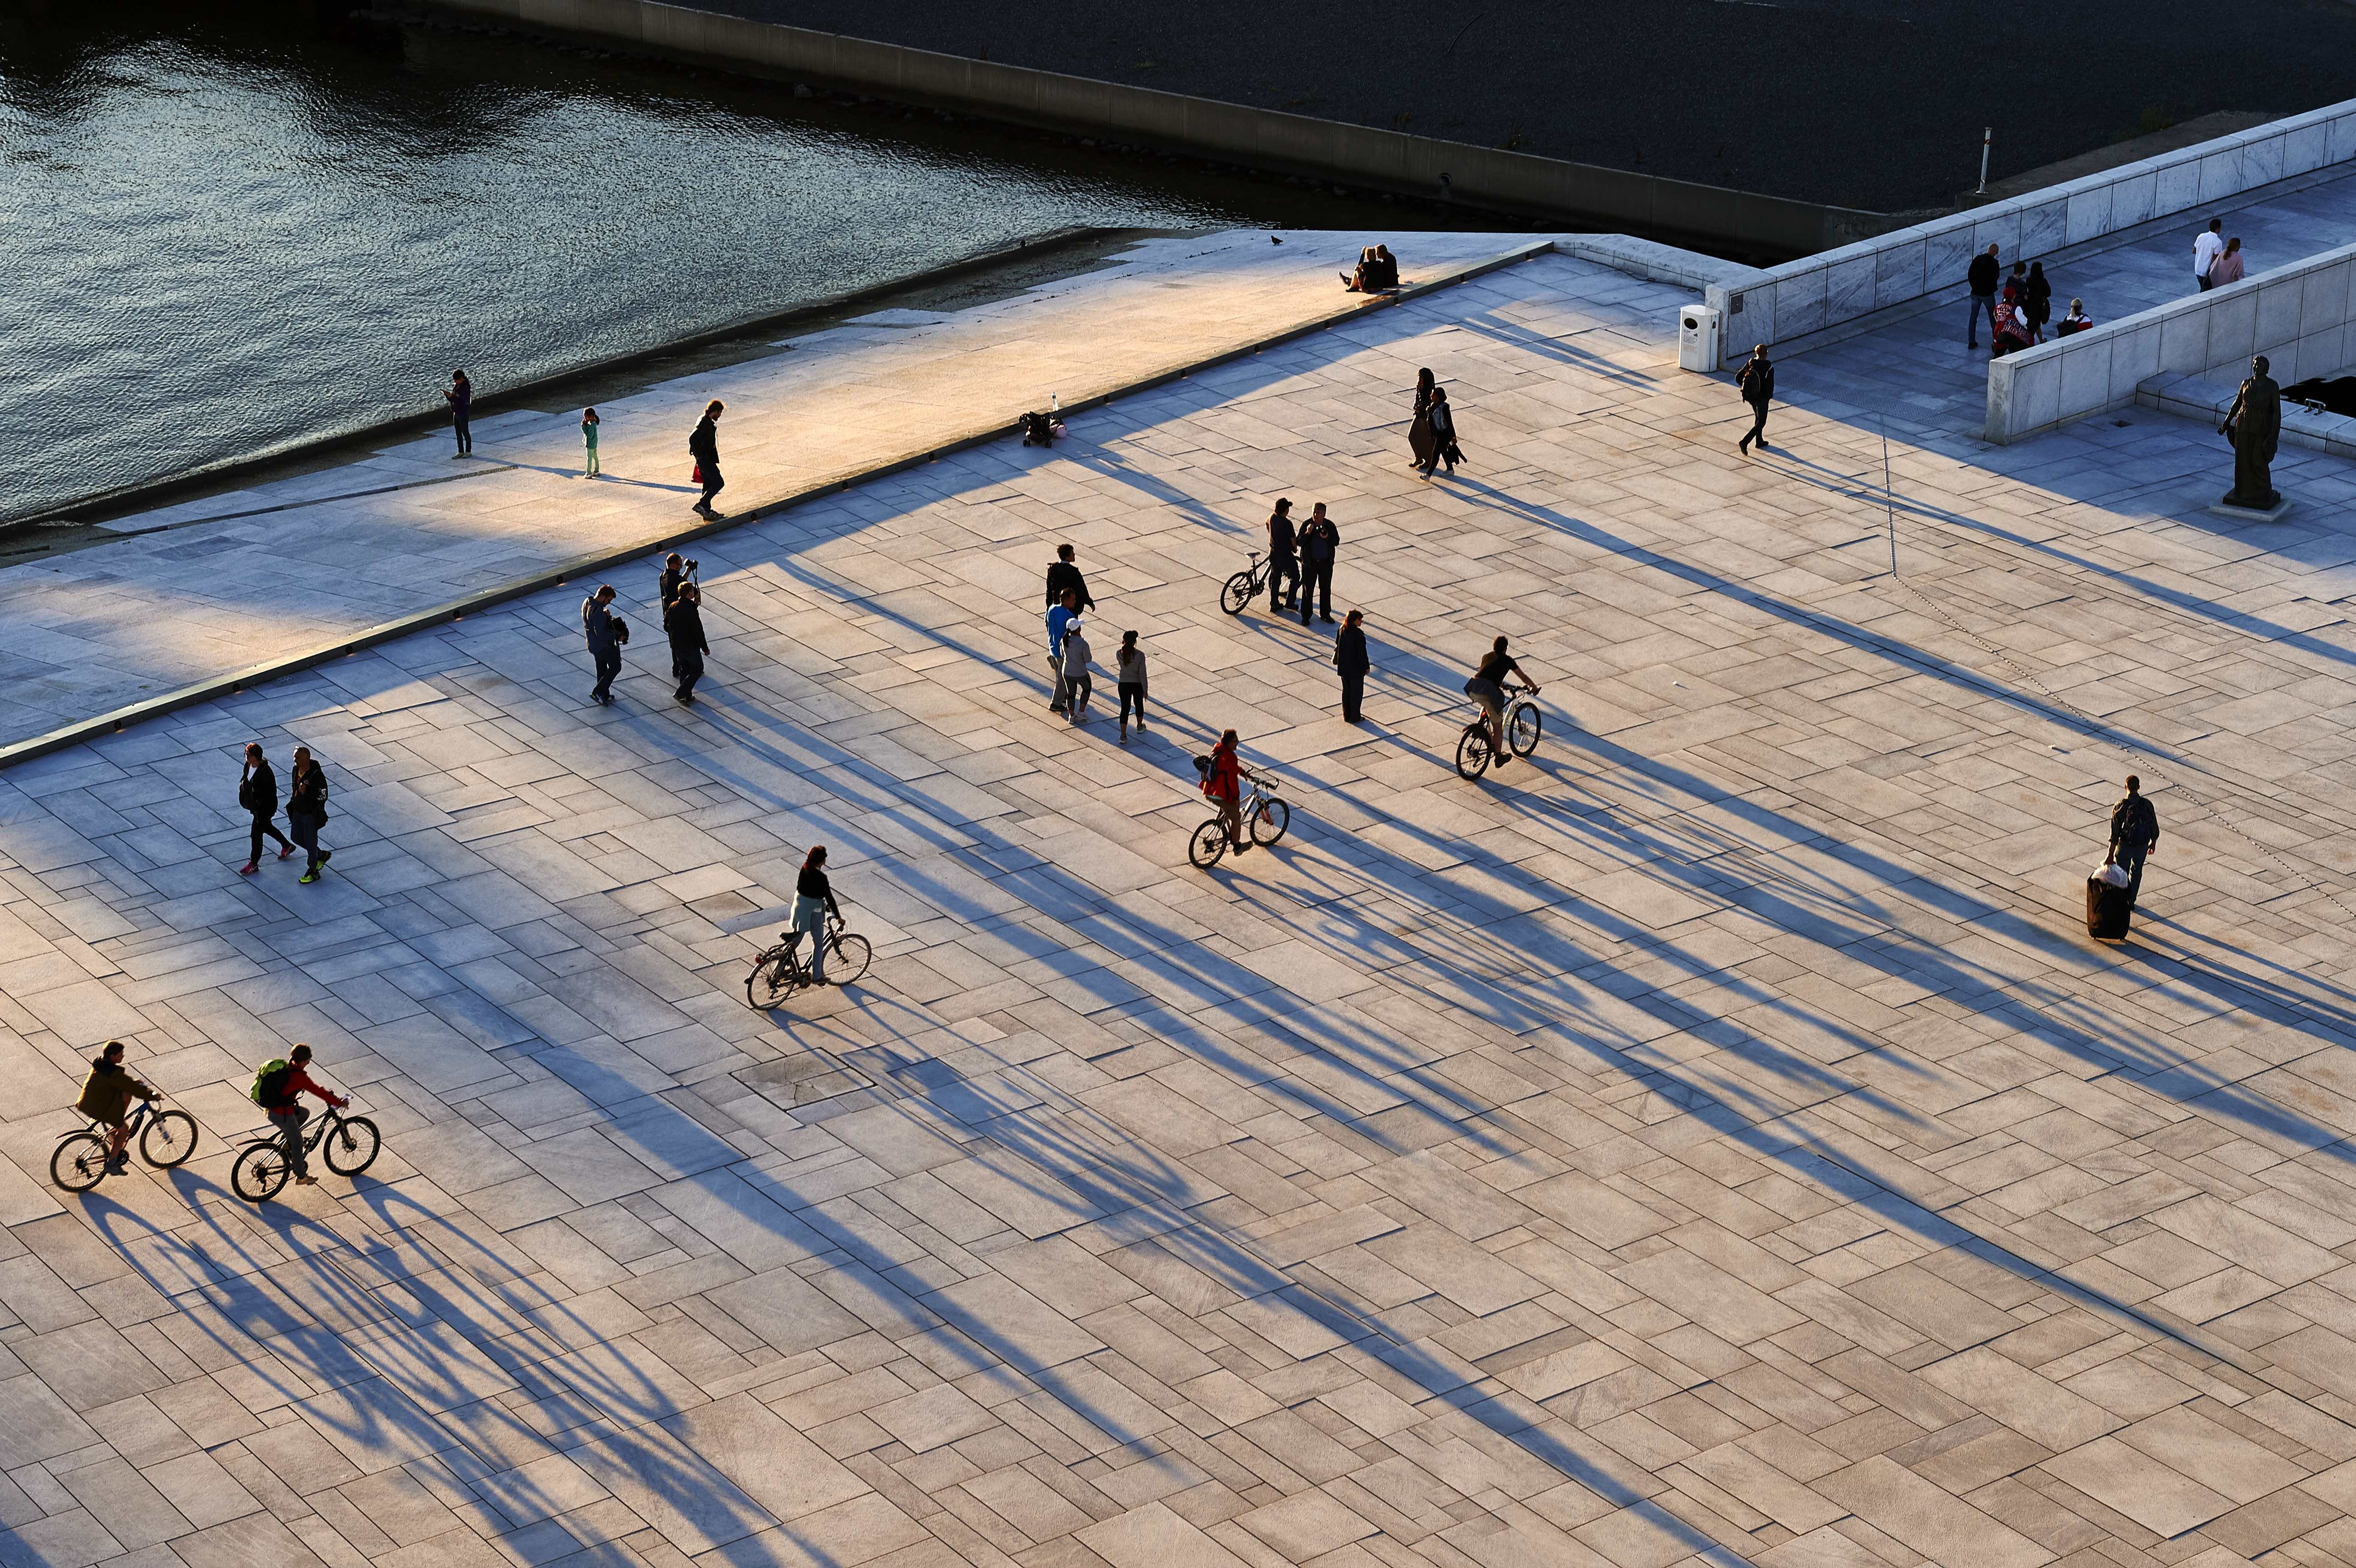 People walk and bike across a sweeping white plaza with dramatic shadows cast against the stone.